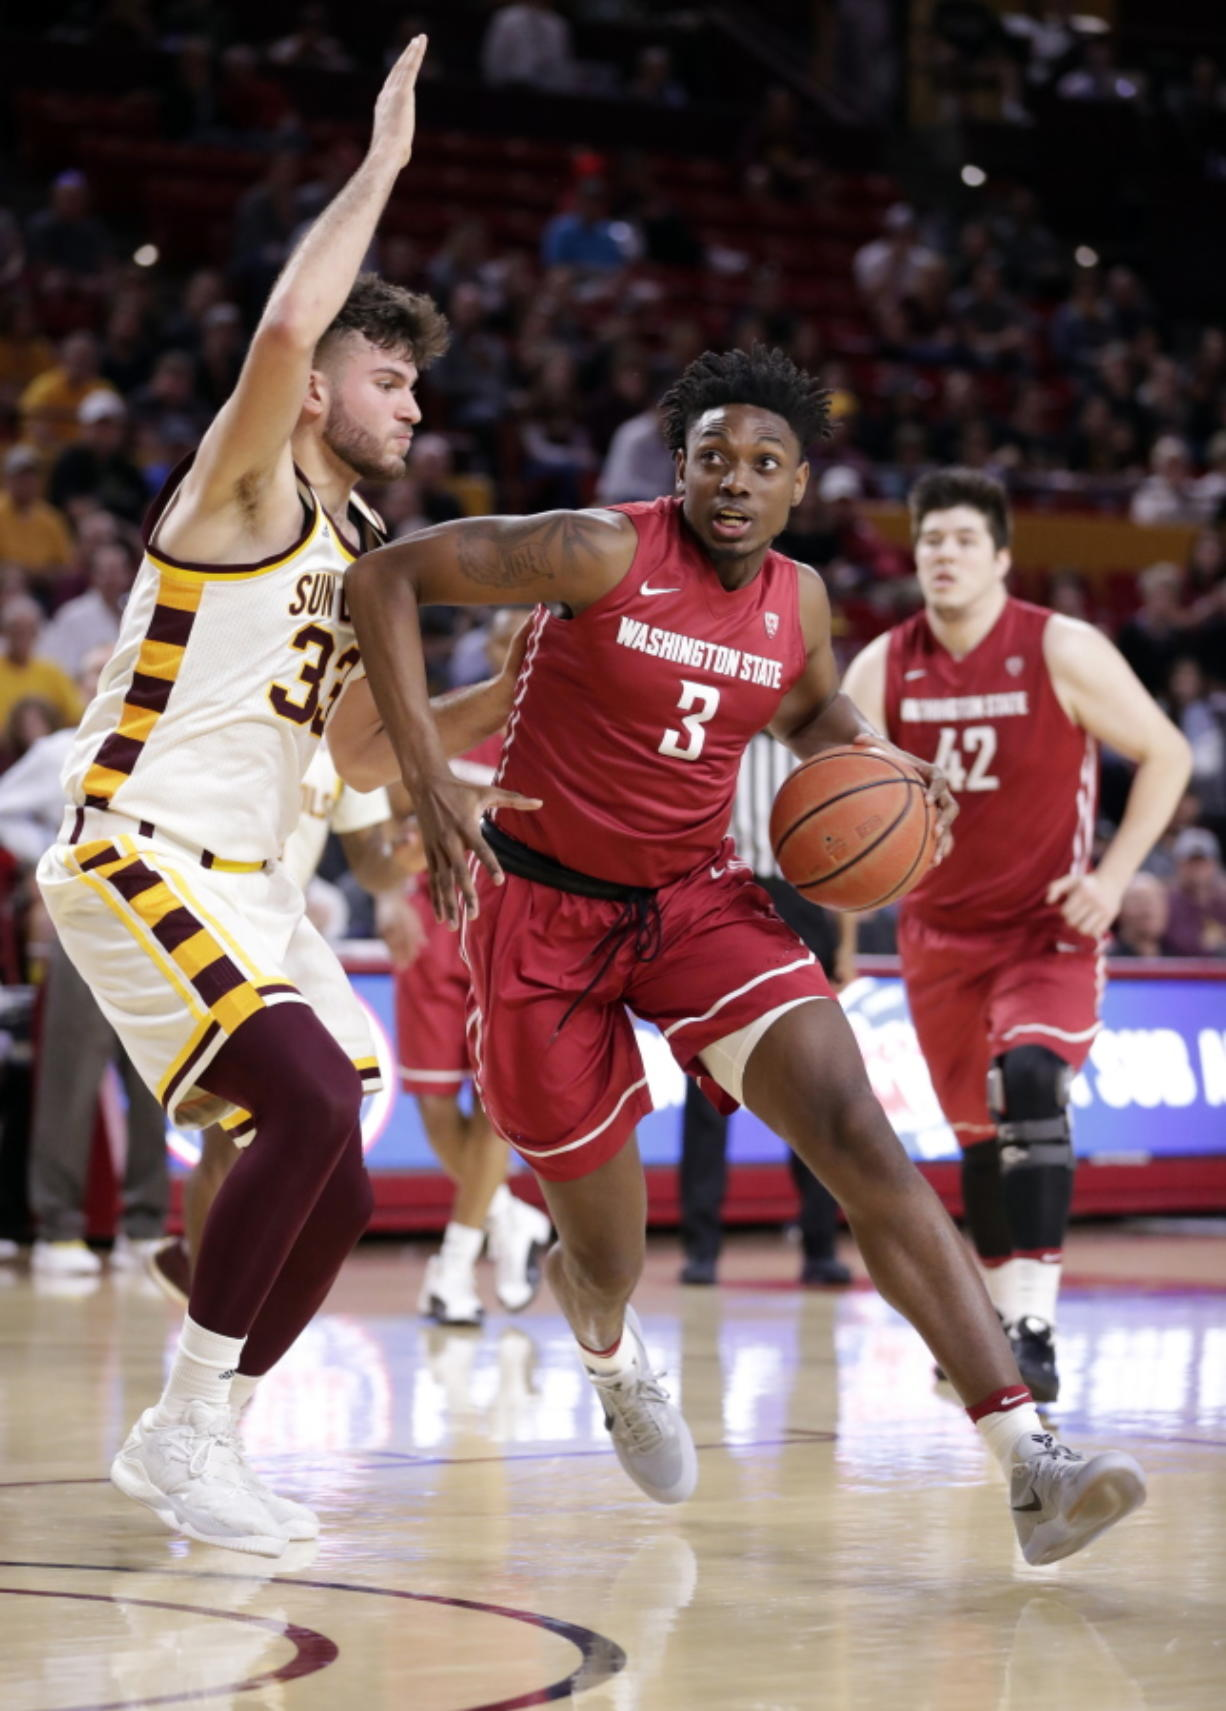 Washington State forward Robert Franks, an Evergreen High School grad, drives past Arizona State forward Ramon Vila (33) during the first half Sunday in Tempe, Ariz. Franks scored six points and made three of four field goals.